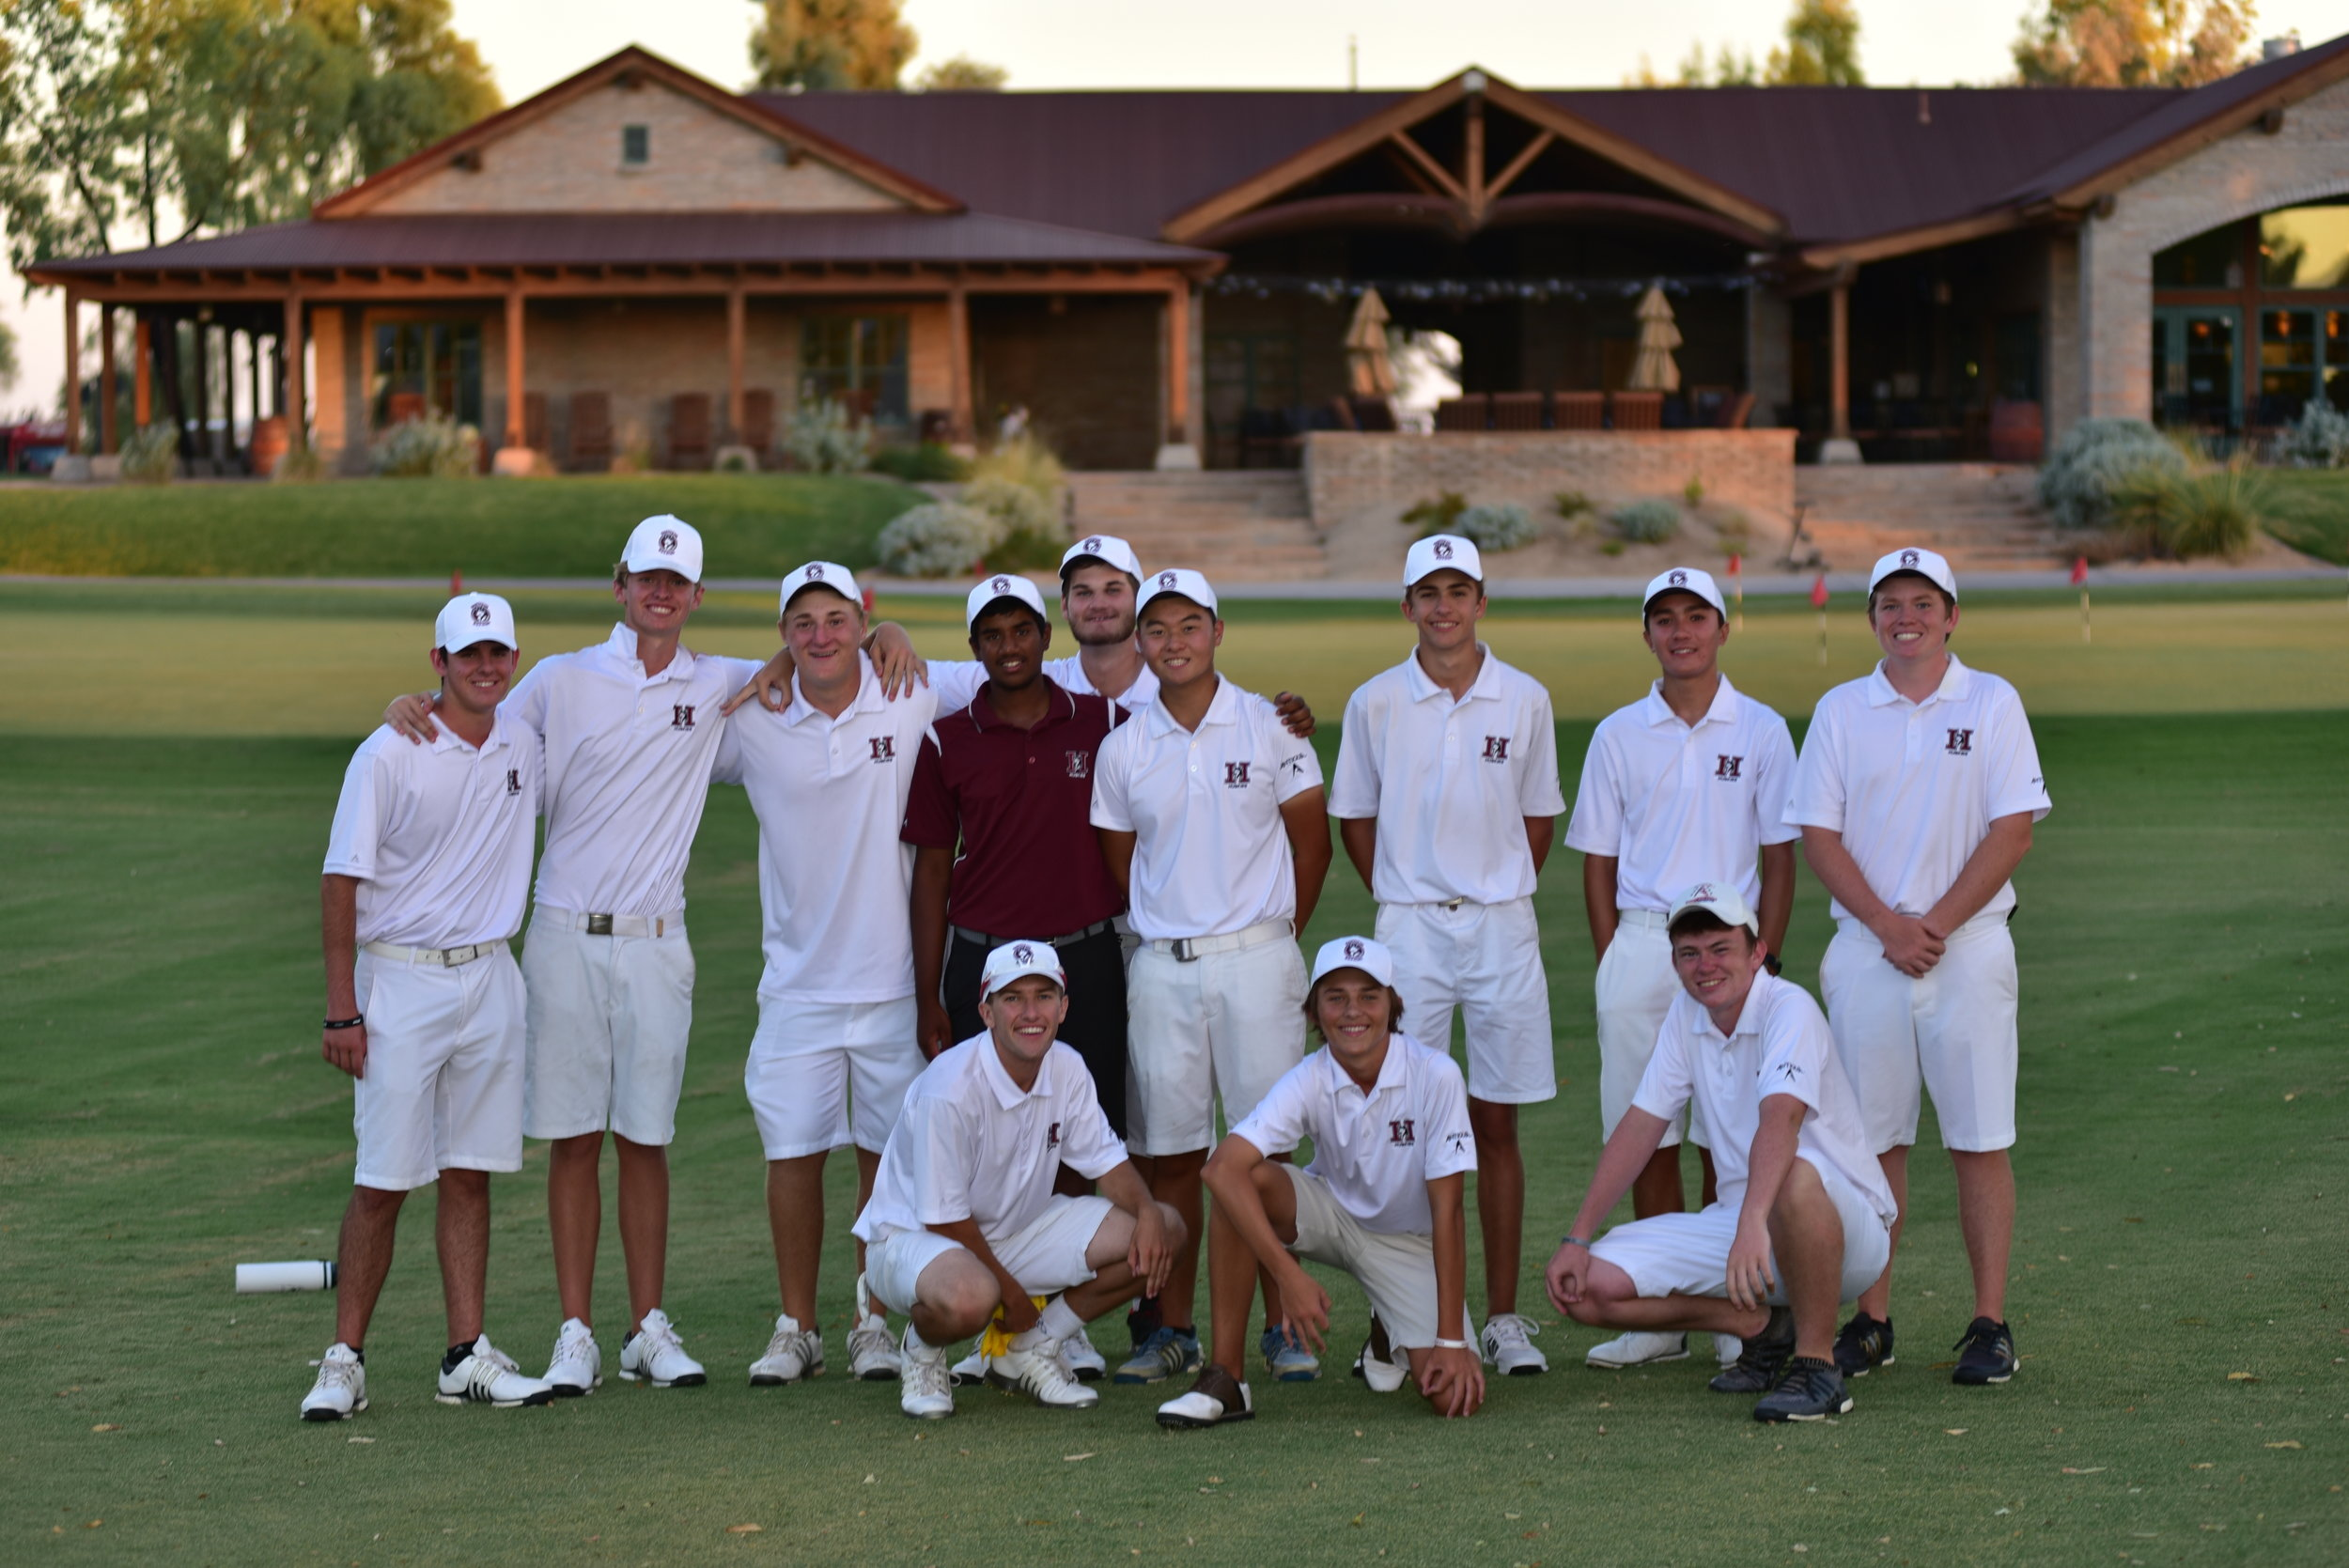 The HHS Boys Golf Team scored an impressive win yesterday in a match against Mt Pointe and Red Mountain High Schools at Southern Dunes Golf Course in Maricopa. The combined team score was 2 under par on a very tough course. Here are the team results:  1) Hamilton HS 142 (-2)  2) Red Mountain HS 172 (+28)  3) Mt Pointe HS 177 (+33)  HHS sophomore Johnny Walker was the match medalist with an outstanding round of 33 (-3)! All five HHS starters finished in the top 6 individually. Here are the HHS individual results: Johnny Walker 33, Mahanth Chirravuri 35, Alexander Yu 37, Caden Rice 37, Noah Bates 42.  Next up for the Huskies is a trip to Fort Worth, Texas next week to play in the prestigious Bart Granger Memorial, an event that includes all of the best high school golf teams in Texas.